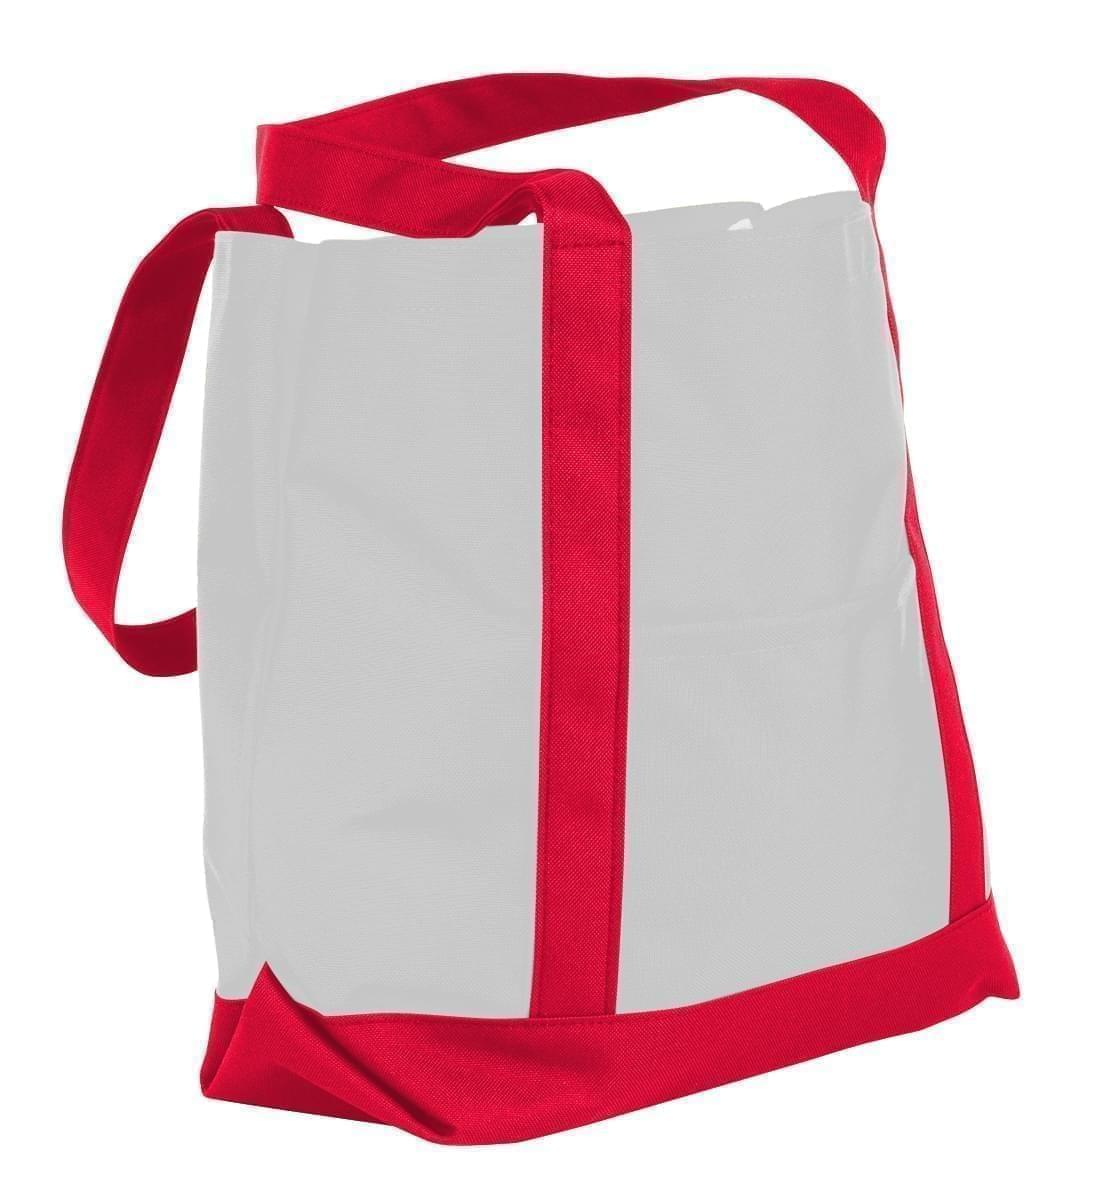 USA Made Nylon Poly Boat Tote Bags, White-Red, XAACL1UA3L